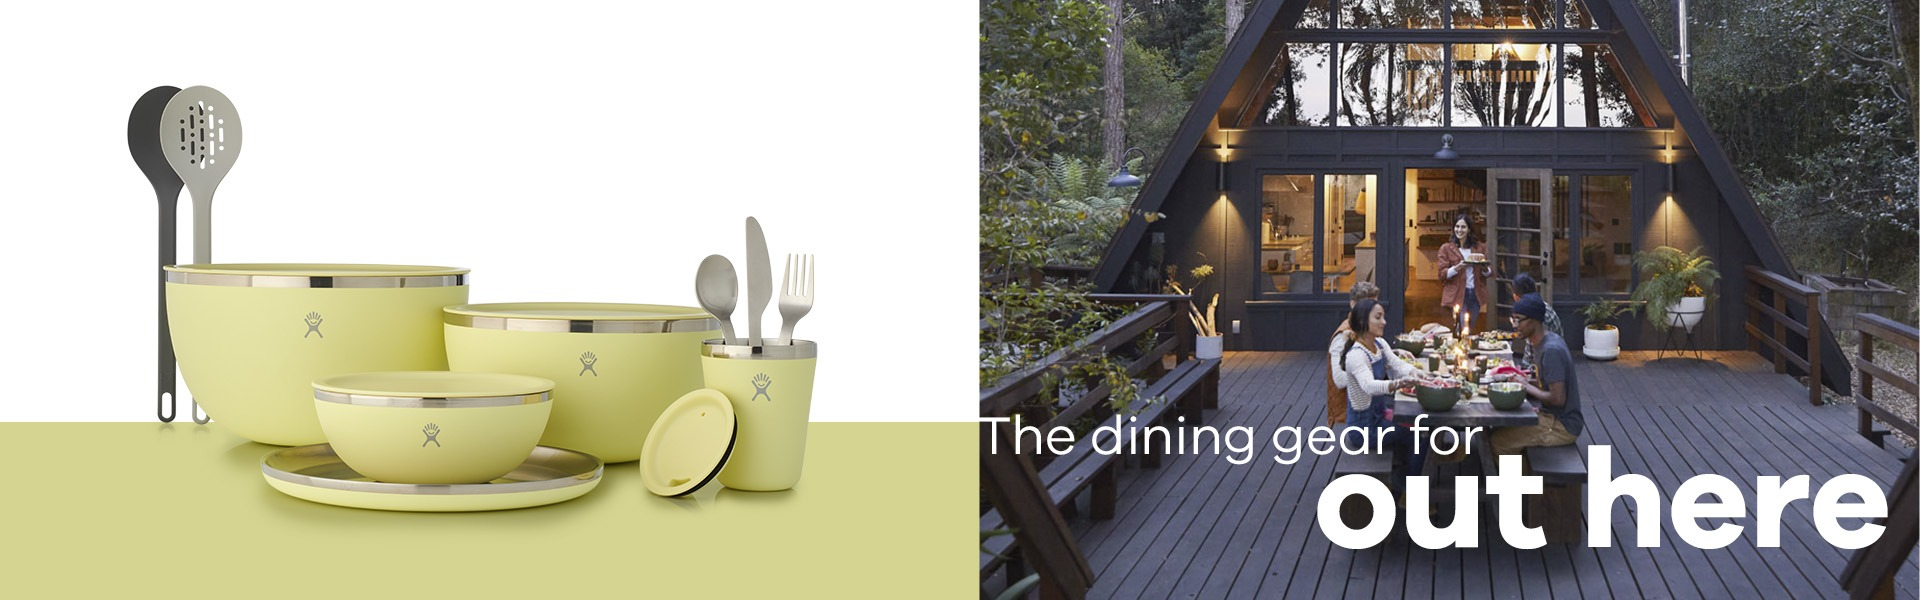 Hydro Flask Introducing Outdoor Kitchen